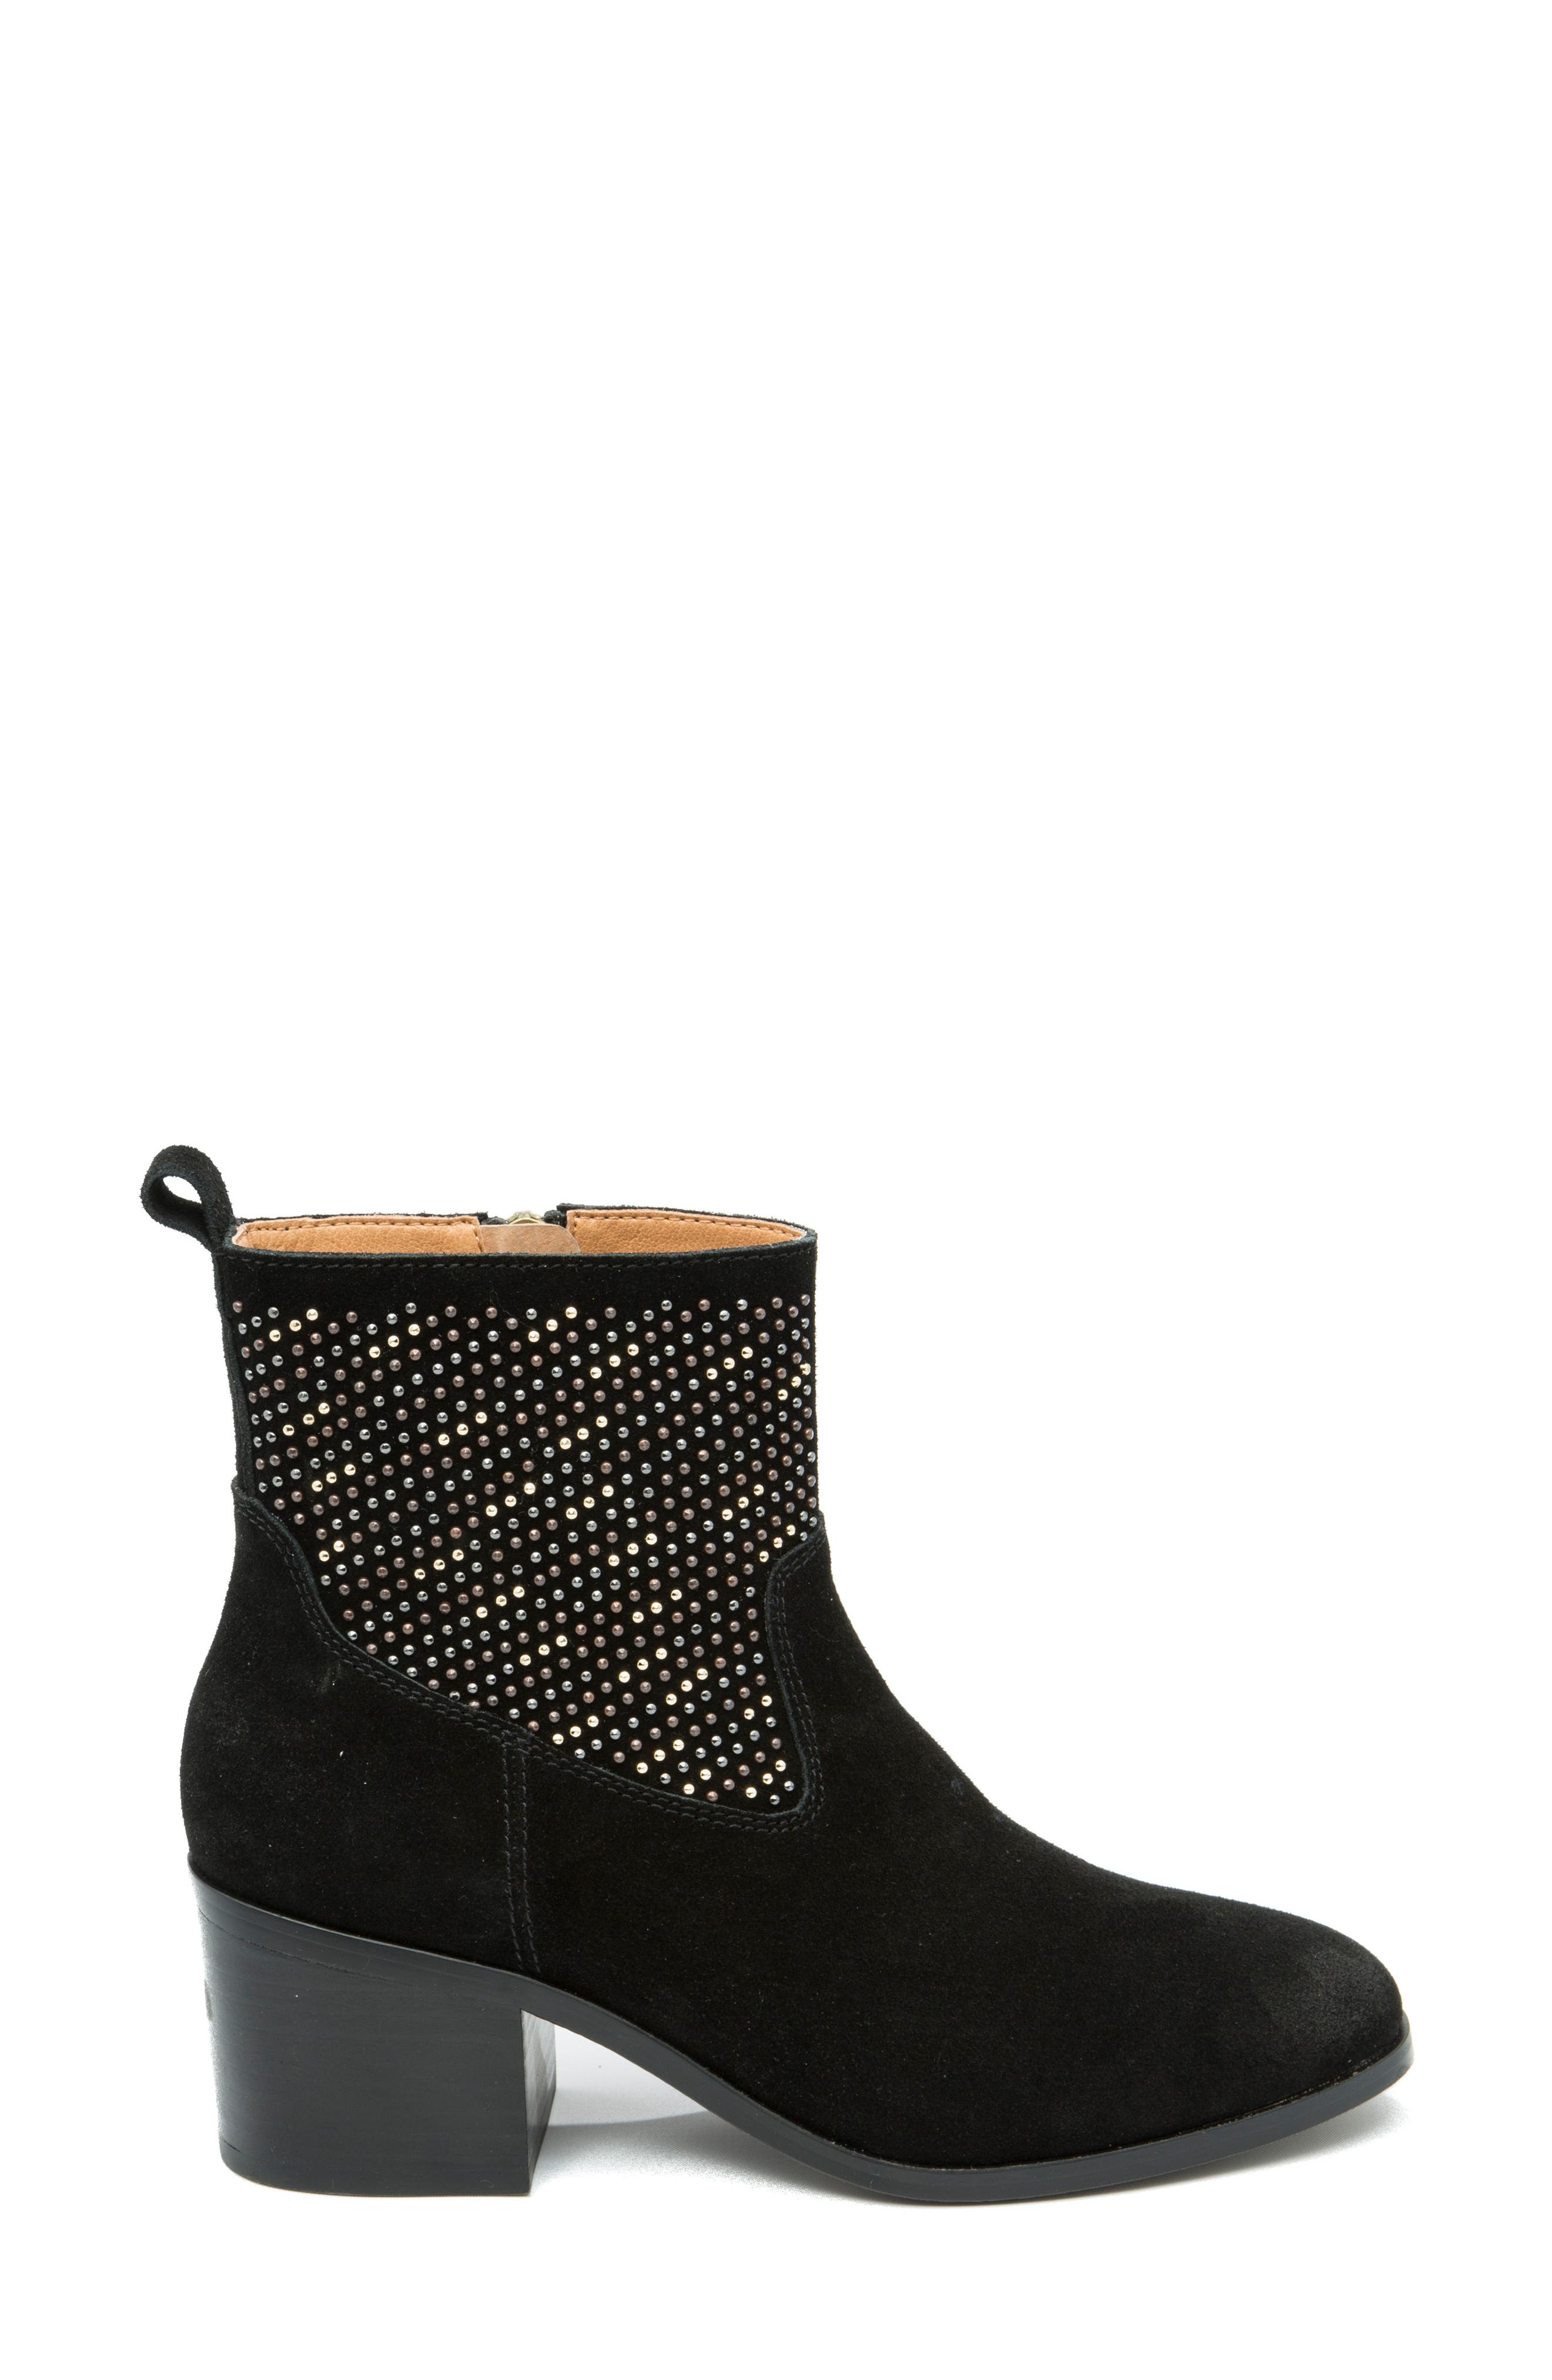 Dosa Studded Bootie,                             Alternate thumbnail 3, color,